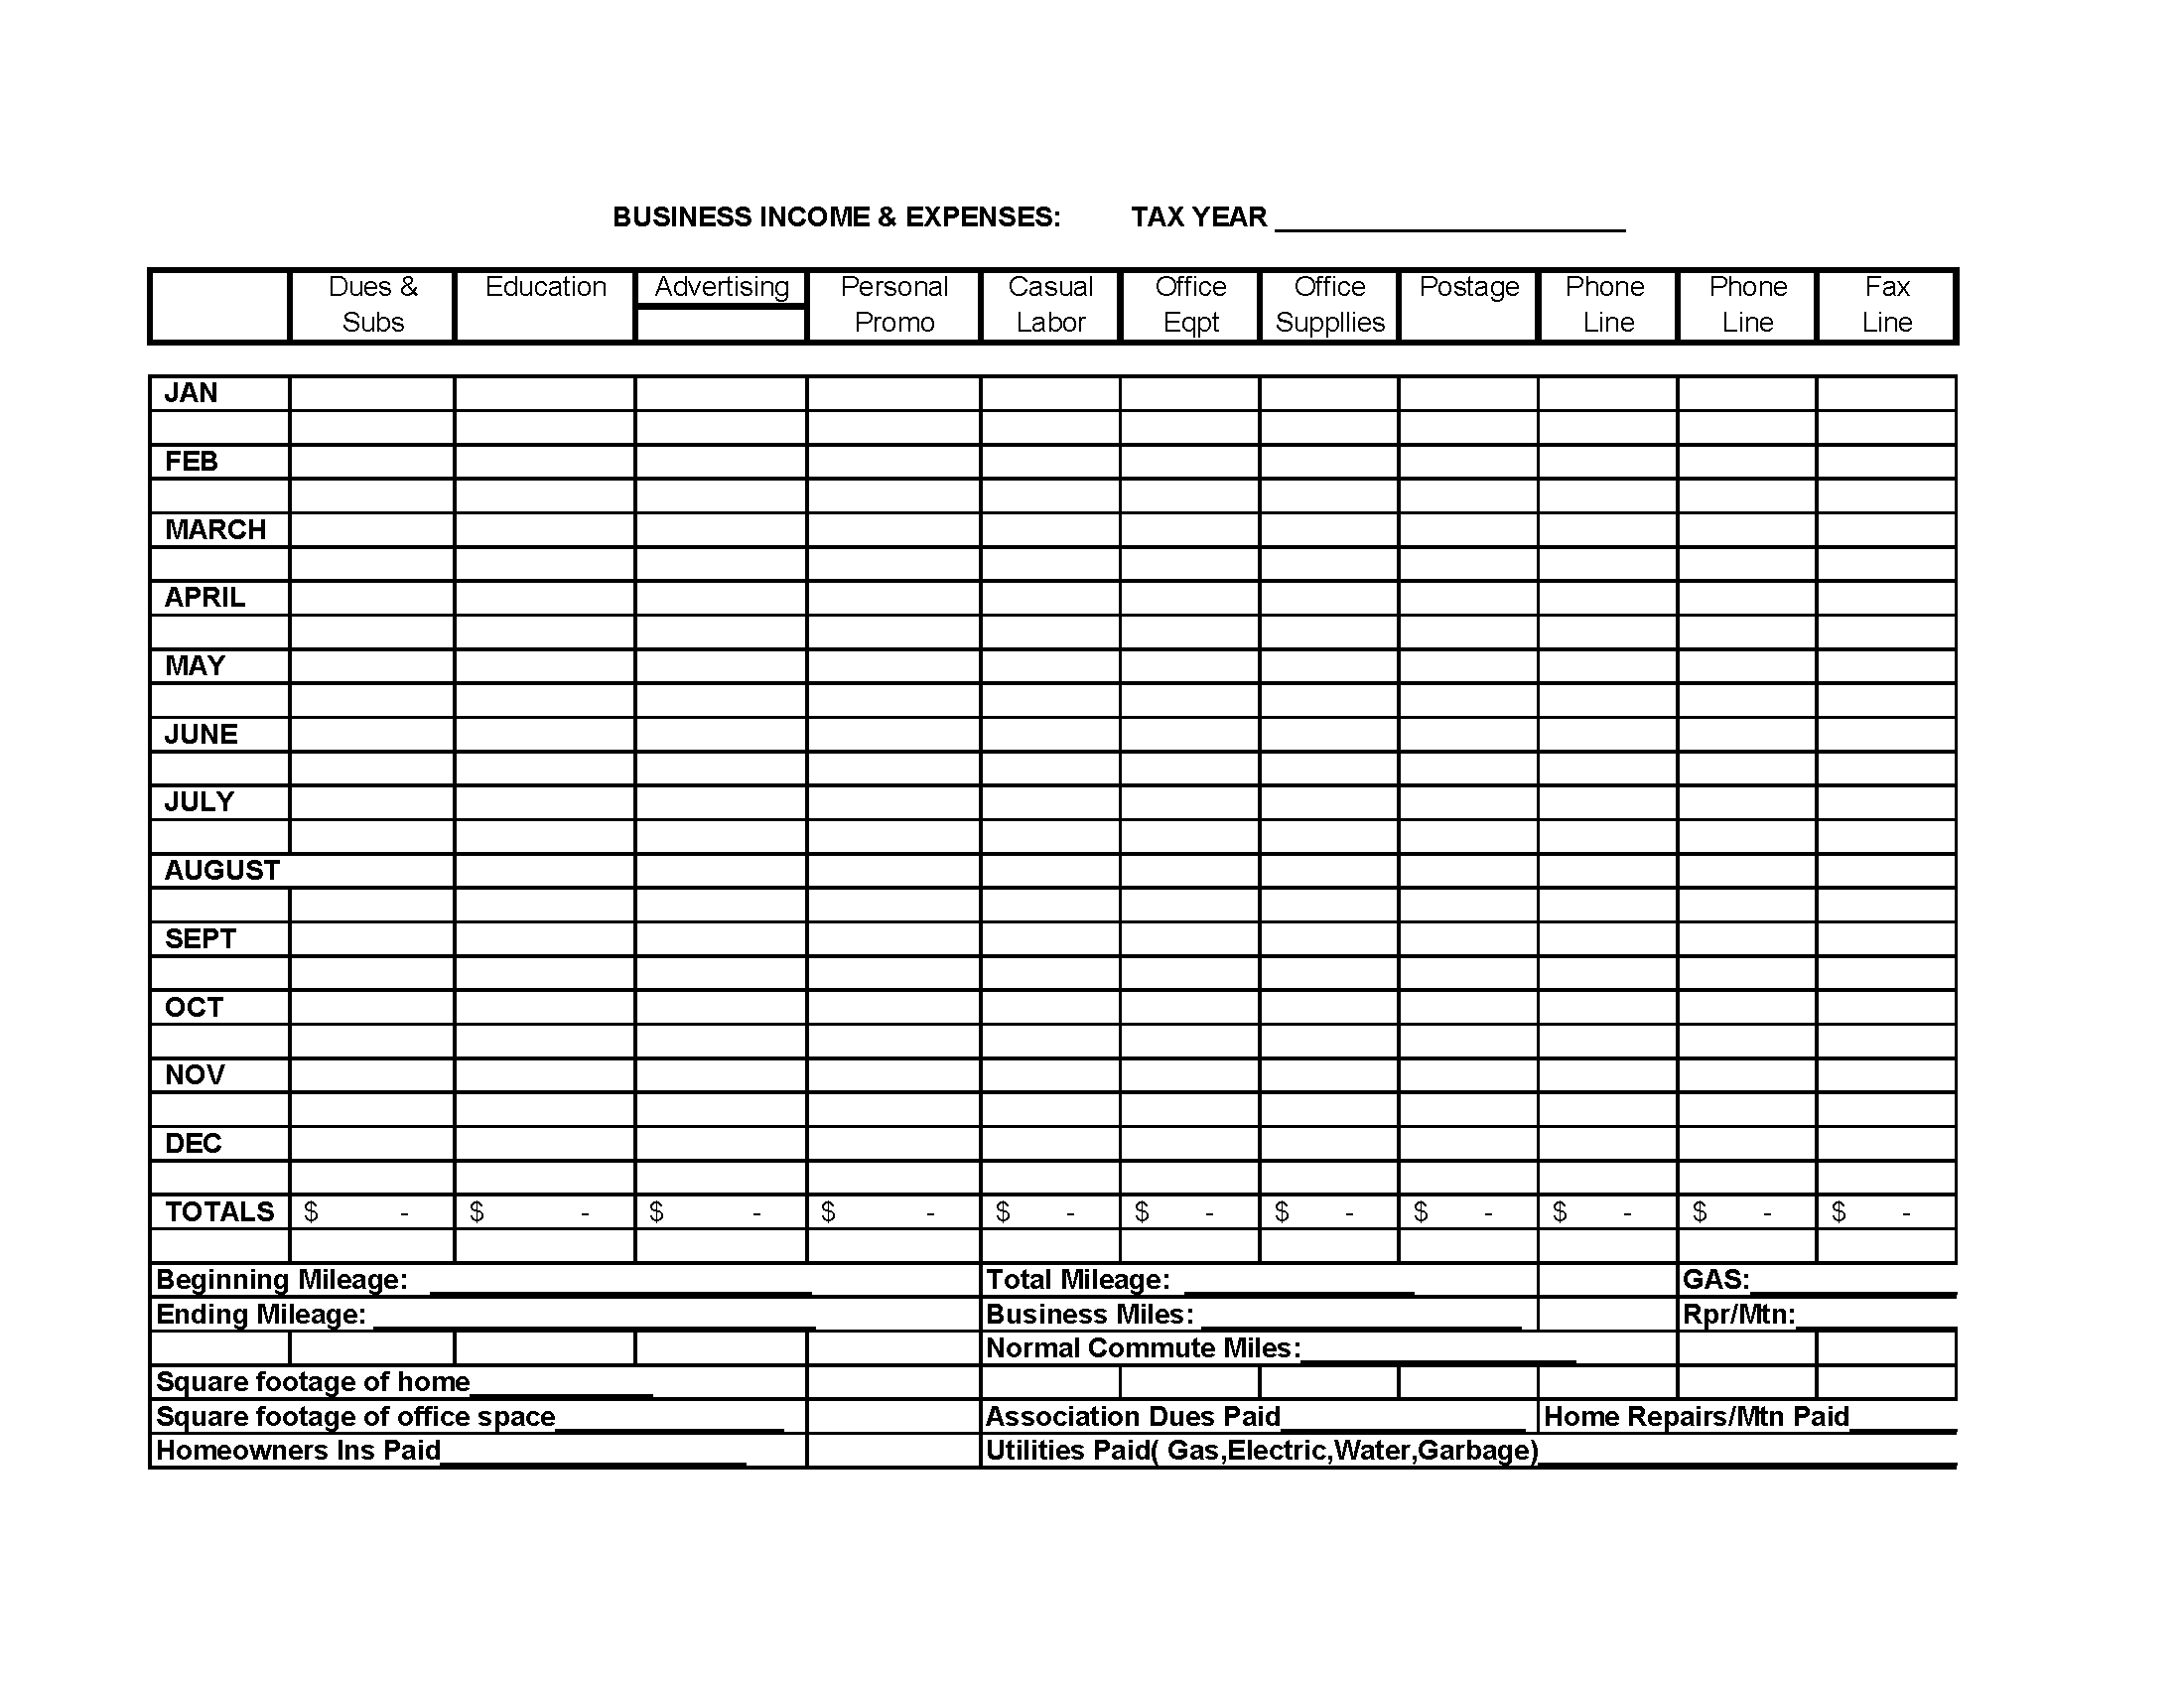 Daily Business Expenses Sheet In Excel Format Free